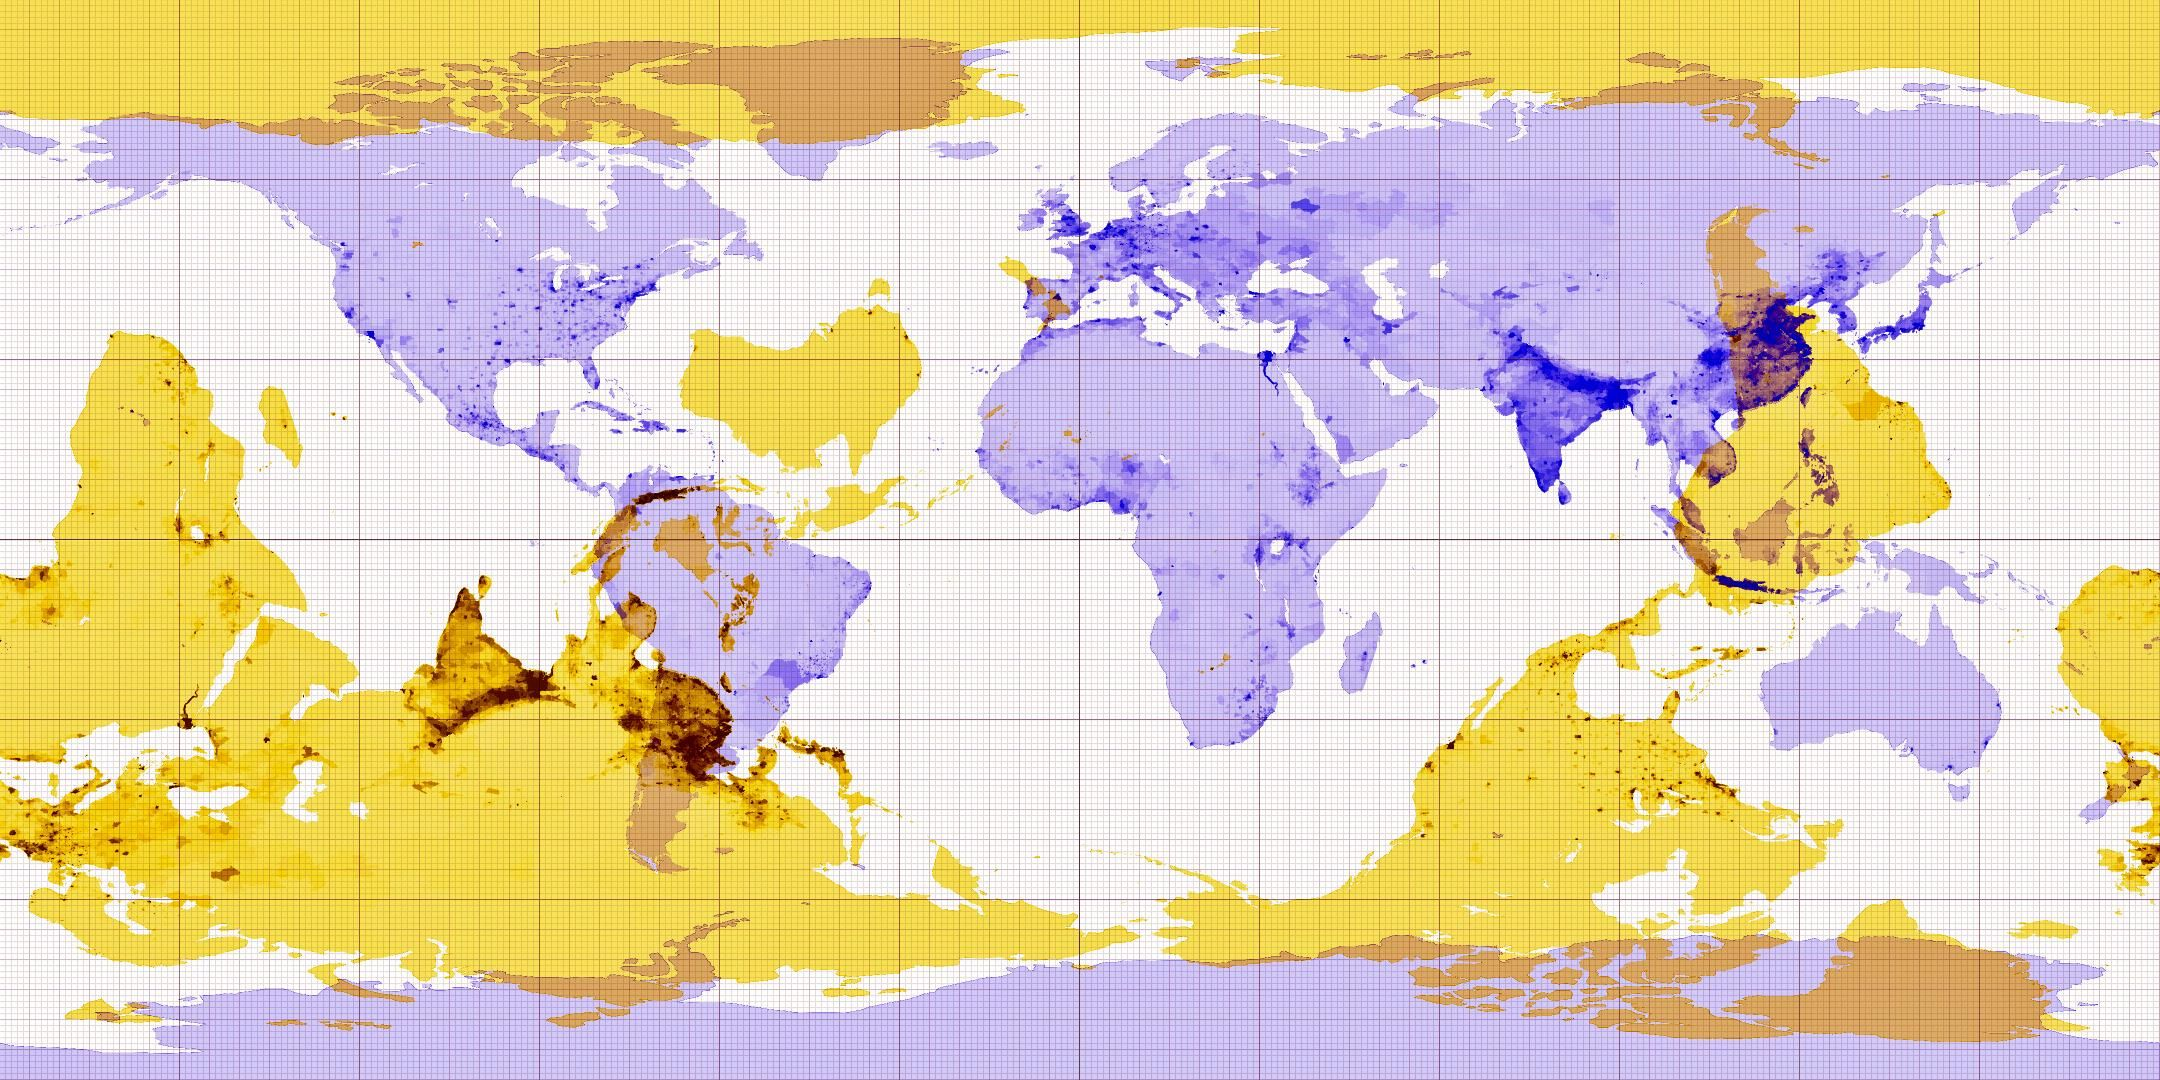 This map helps you find the antipodes (the other side of the world) of any place on Earth.